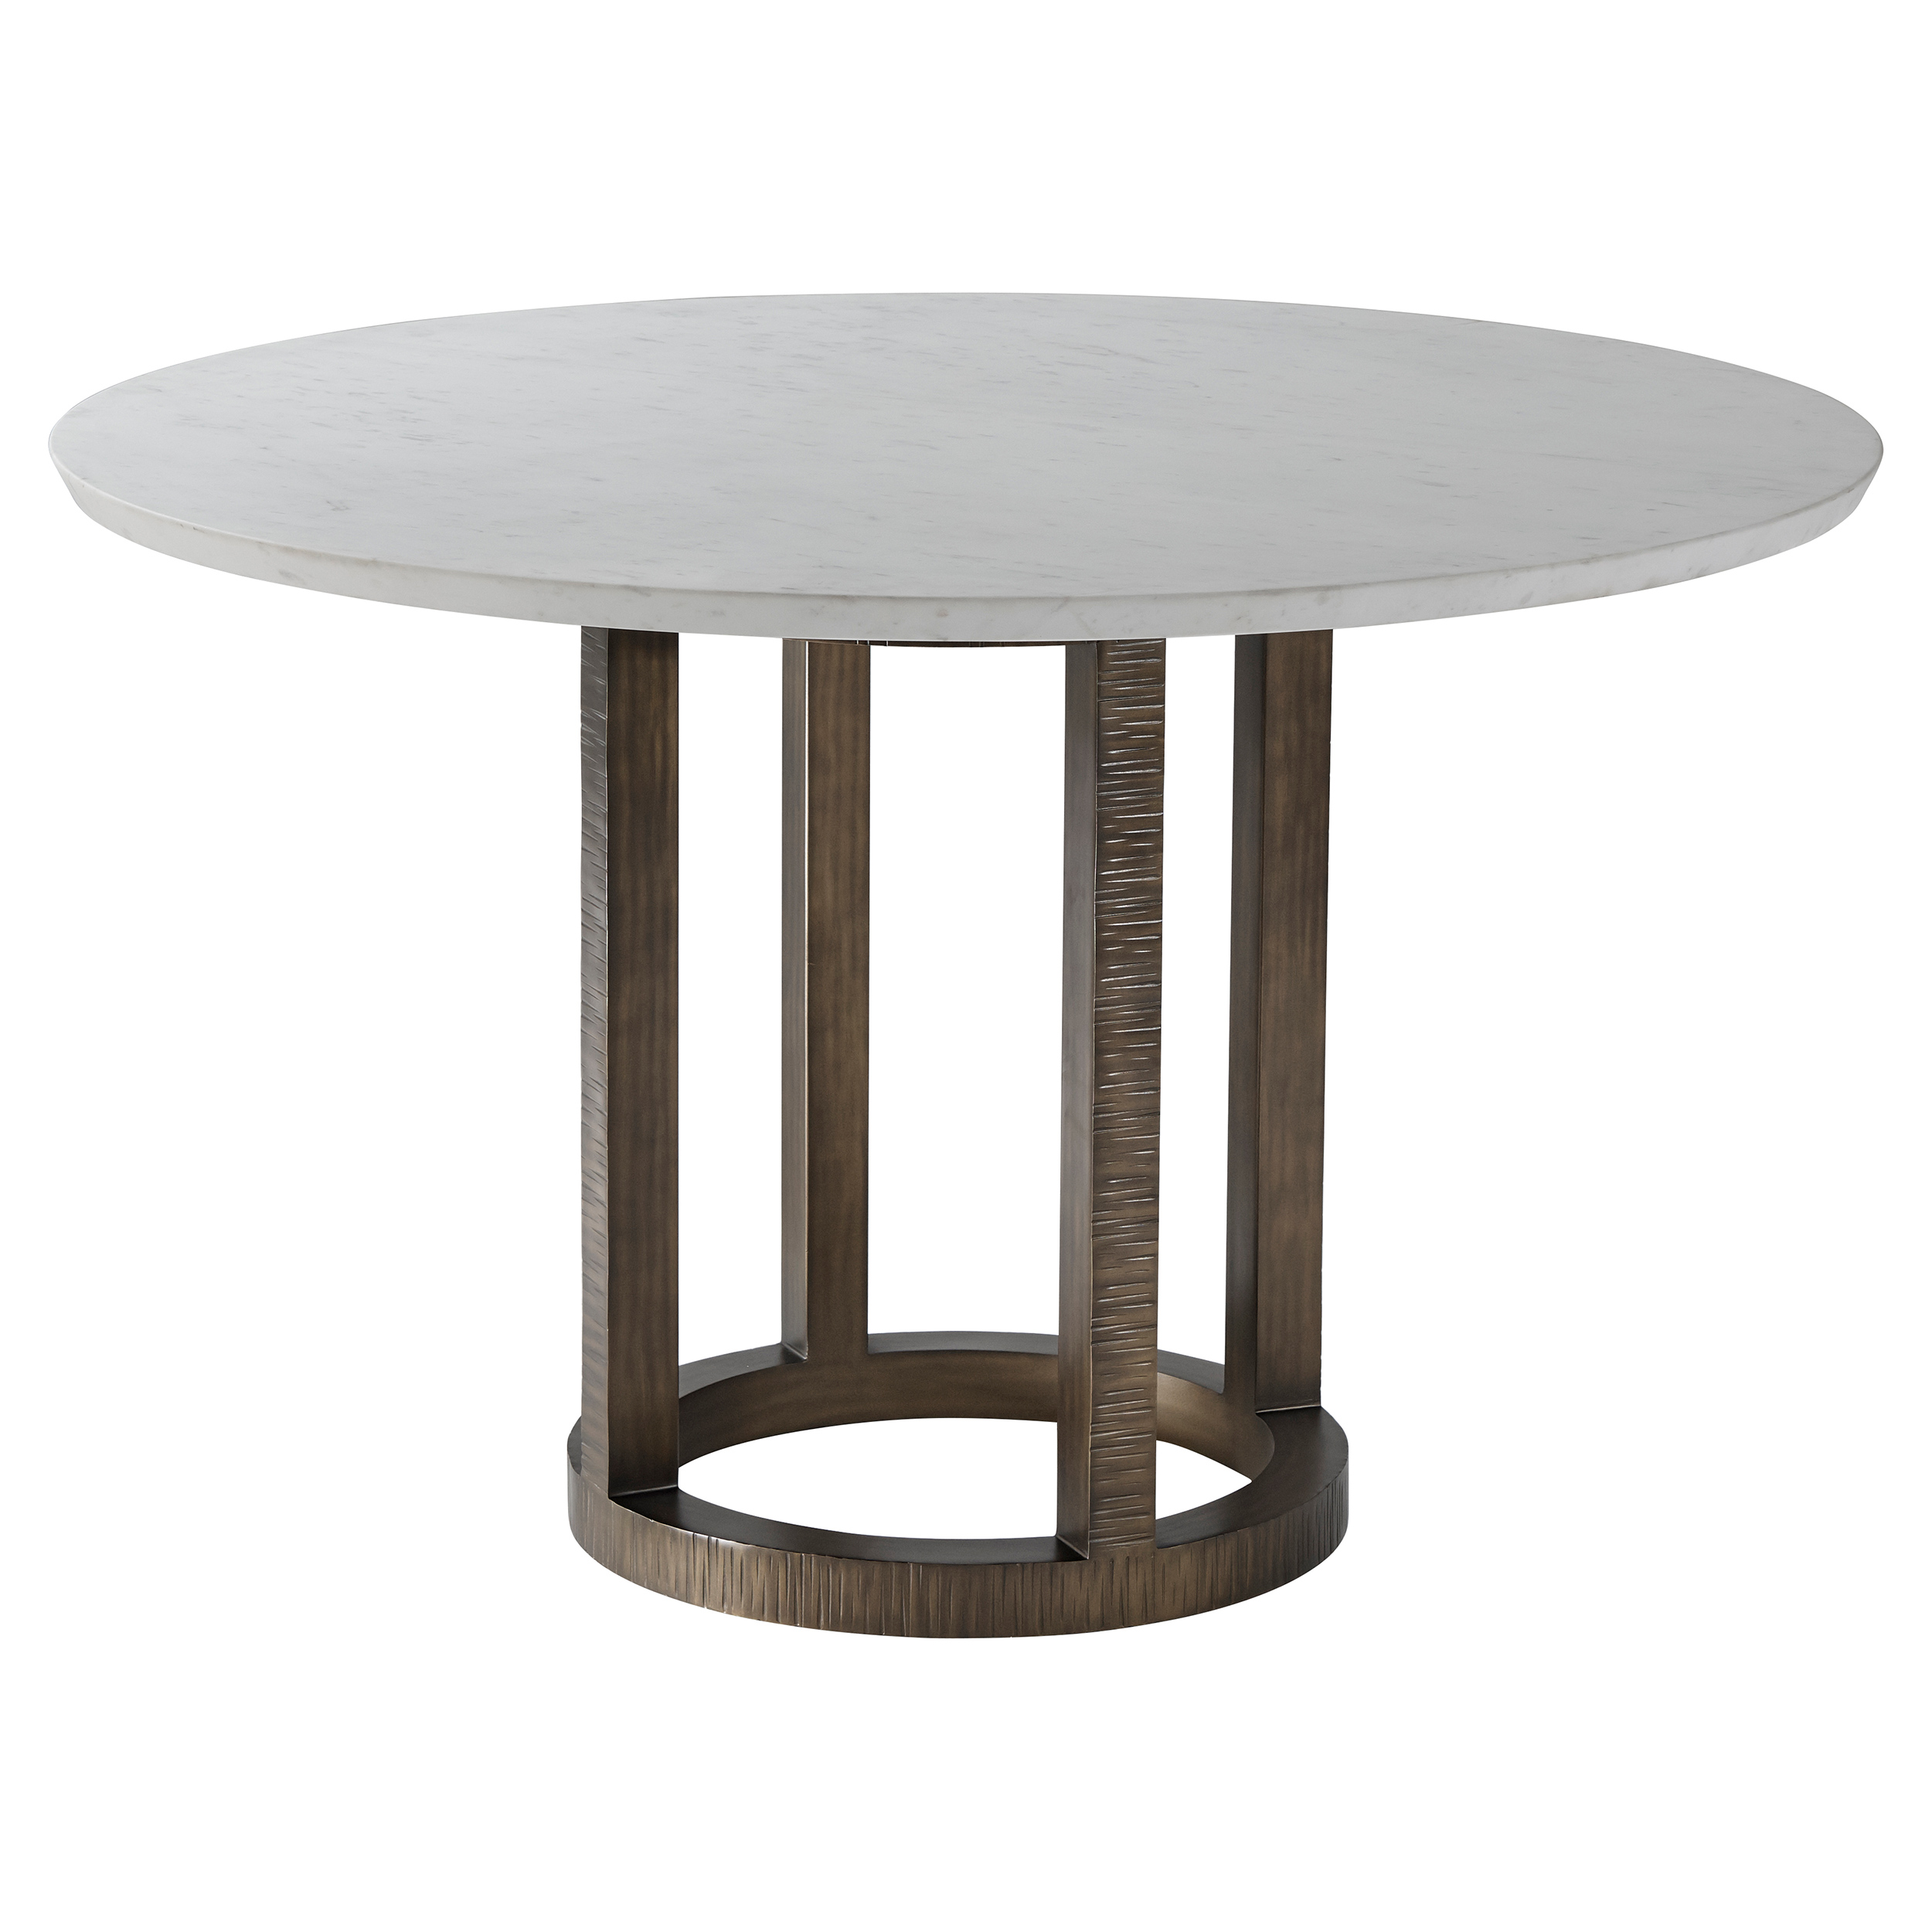 Theodore Alexander Hermosa Table II Honed White Marble Top Round Dining  Table